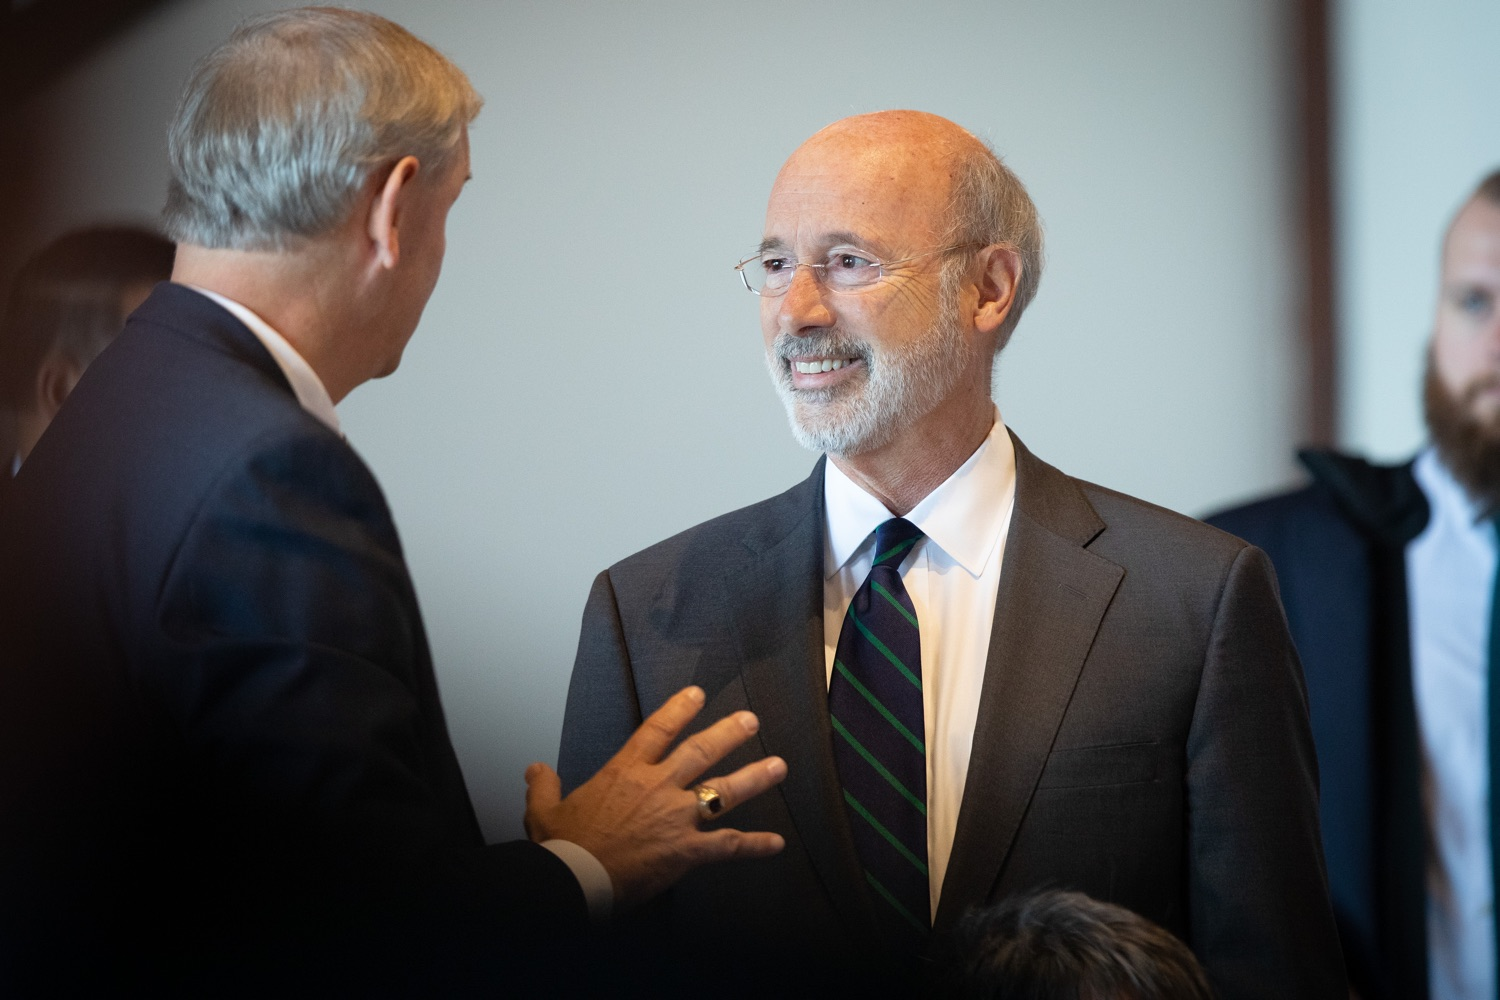 """<a href=""""https://filesource.wostreaming.net/commonwealthofpa/photo/17467_gov_opioids_dz_019.JPG"""" target=""""_blank"""">⇣Download Photo<br></a>Boalsburg, PA  Governor Tom Wolf speaking with summit attendees.  Governor Tom Wolf today kicked off his administrations first Opioid Command Center Opioid Summit: Think Globally, Act Locally, which brought together 200 individuals helping their communities fight the opioid crisis, including community organizations, non-profits, schools, health care workers, addiction and recovery specialists, and families affected by the opioid crisis.  Tuesday, October 1, 2019"""